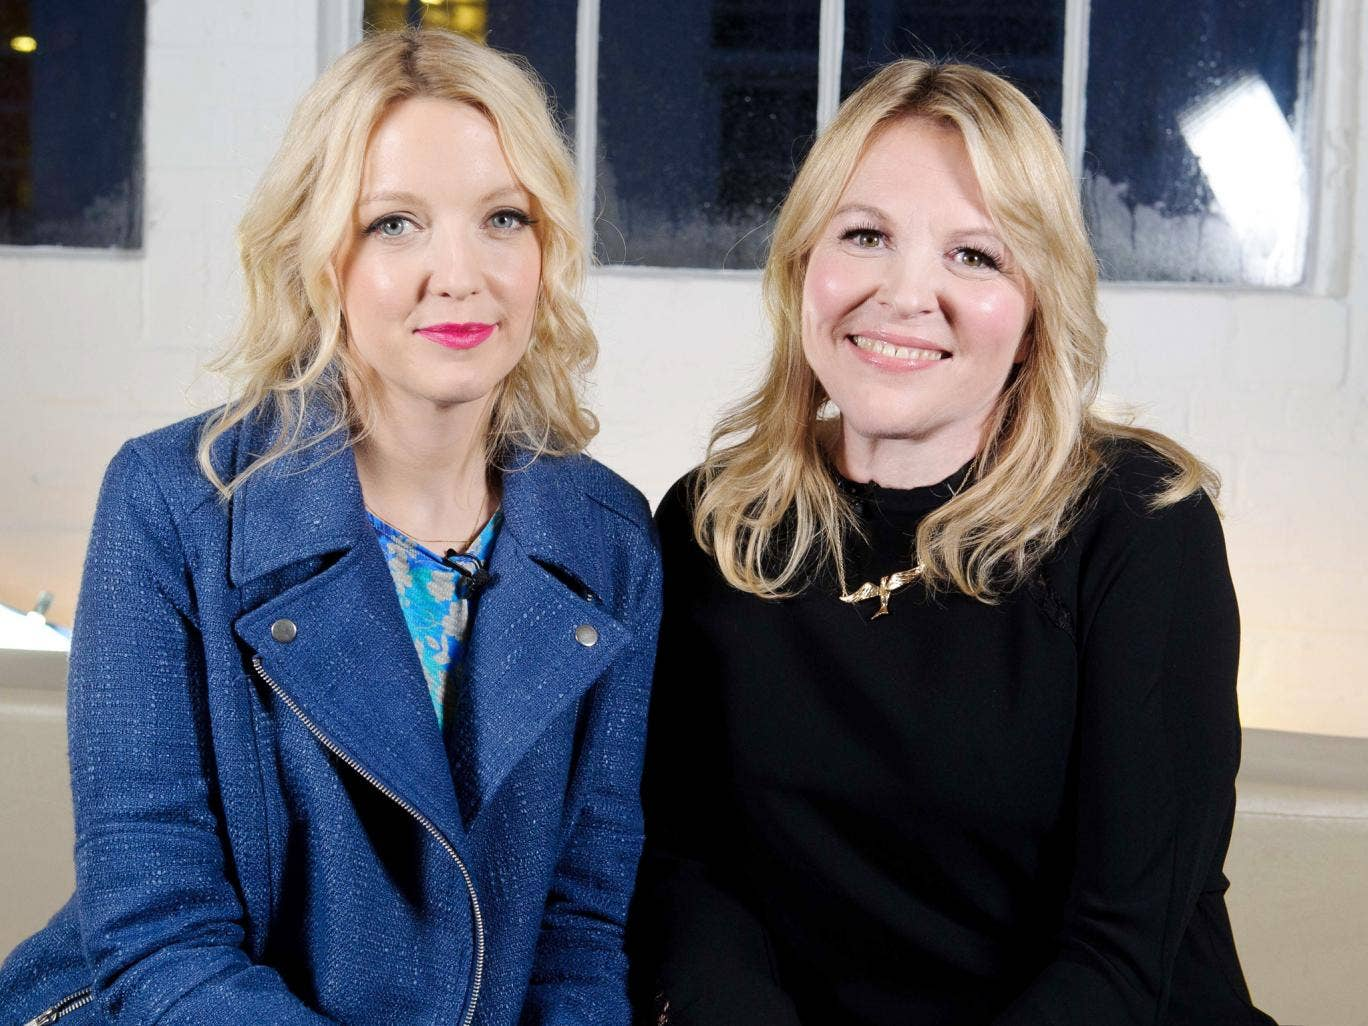 TV presenter Lauren Laverne with stylist Wendy Elsmore at London Fashion Weekend